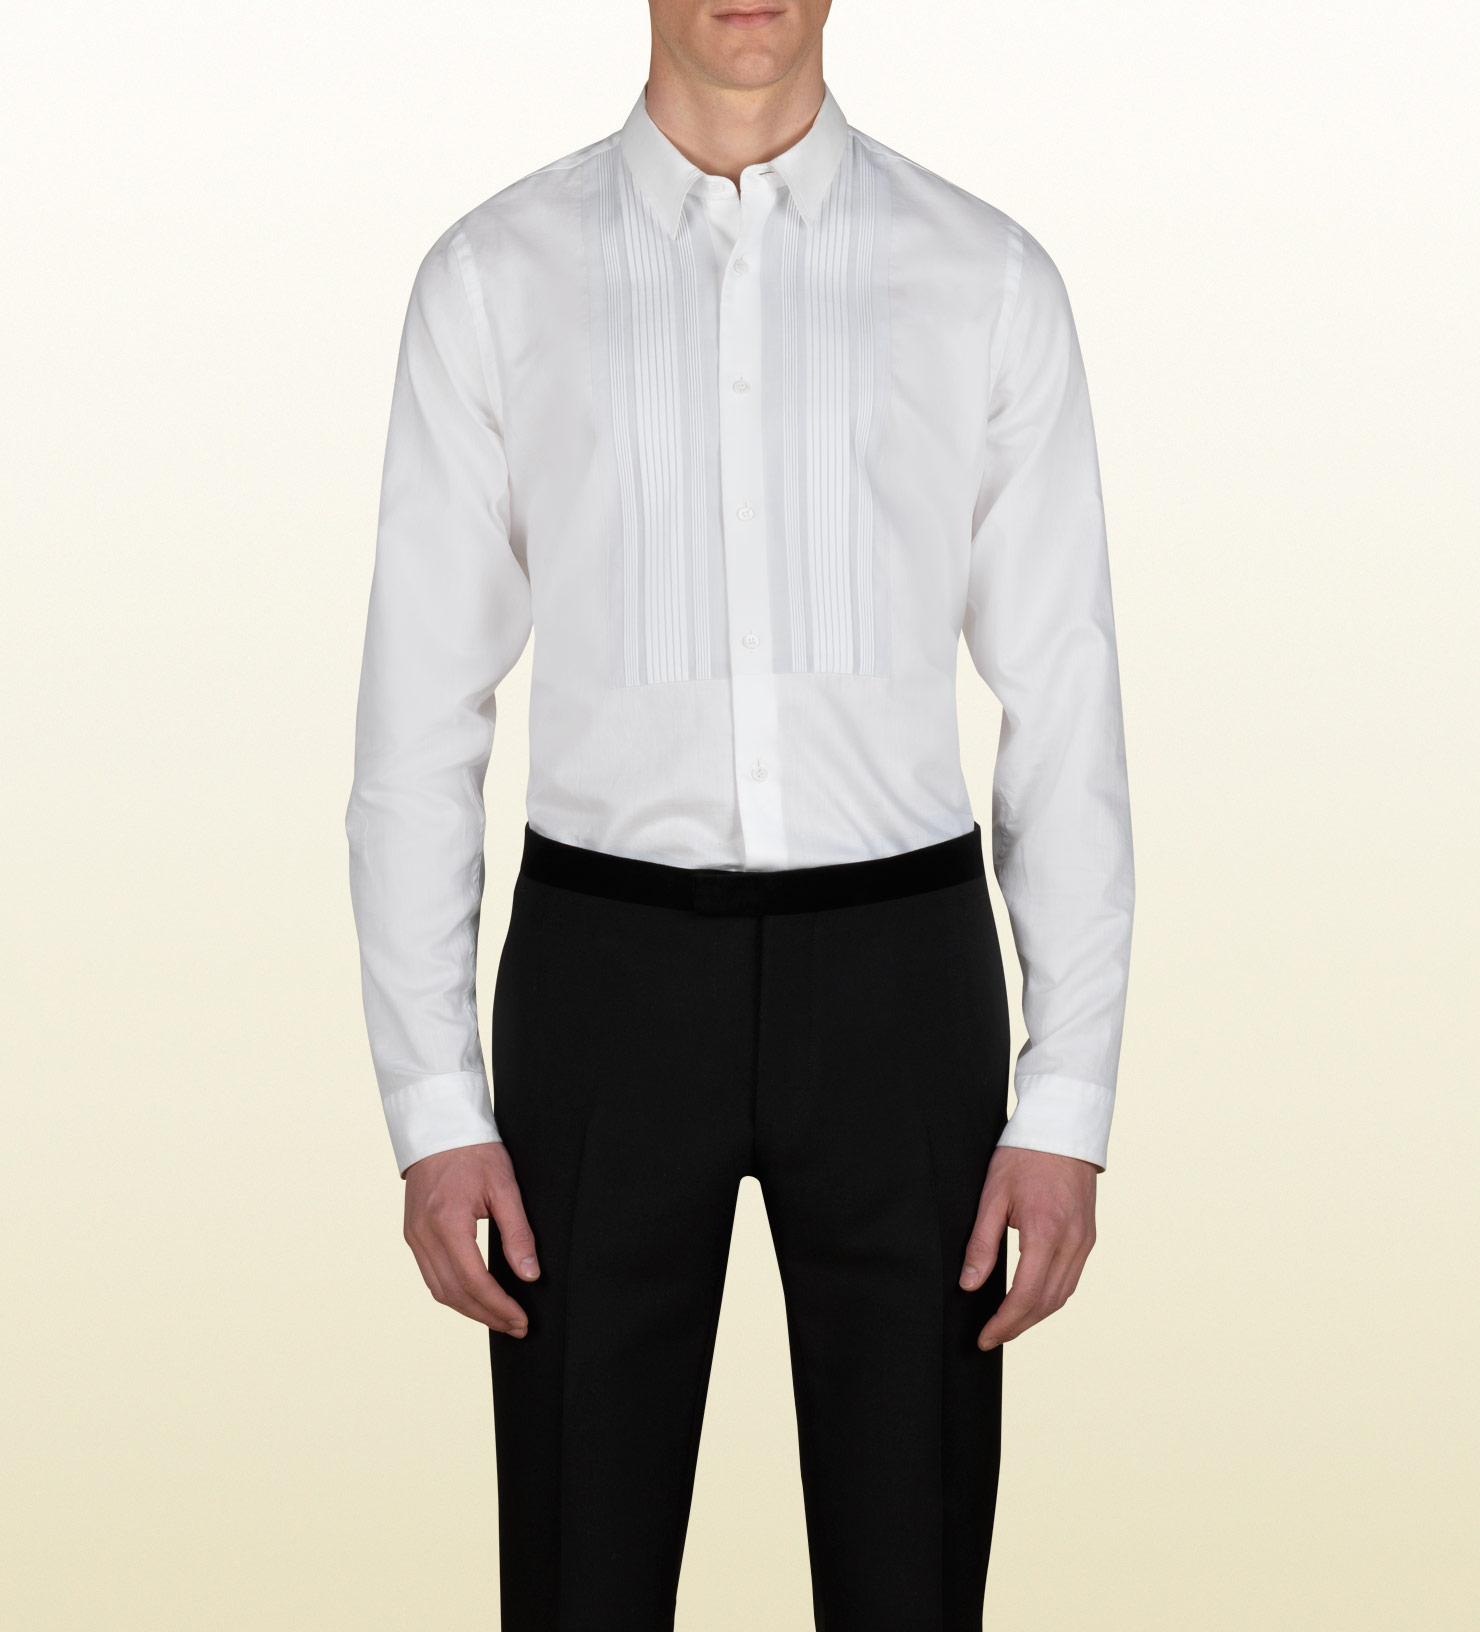 Lyst Gucci Skinny Evening Shirt In White For Men